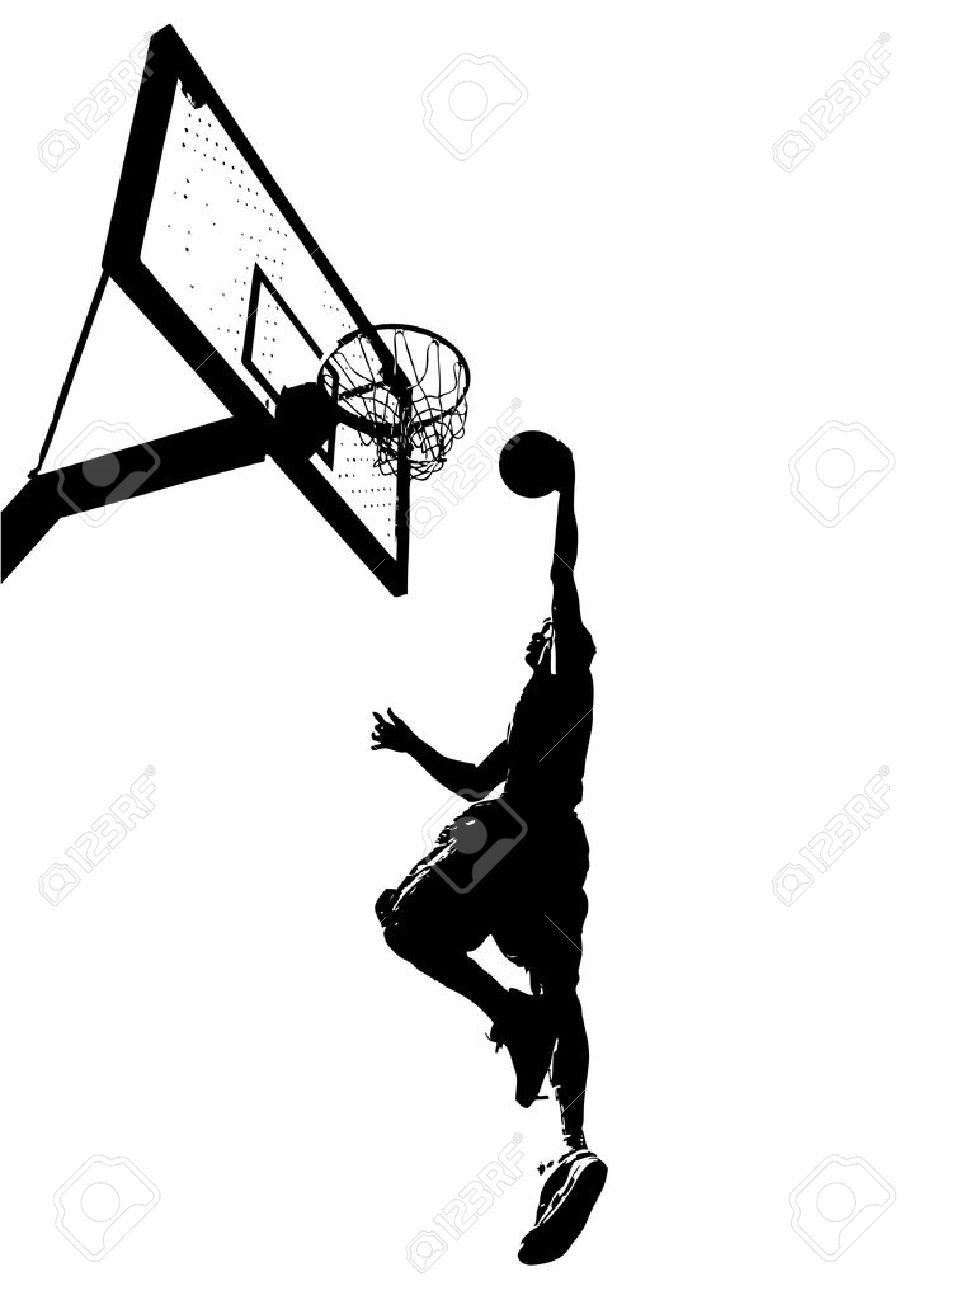 High contrast silhouette illustration of an athlete slam dunking a basketball. Stock Vector - 6579145